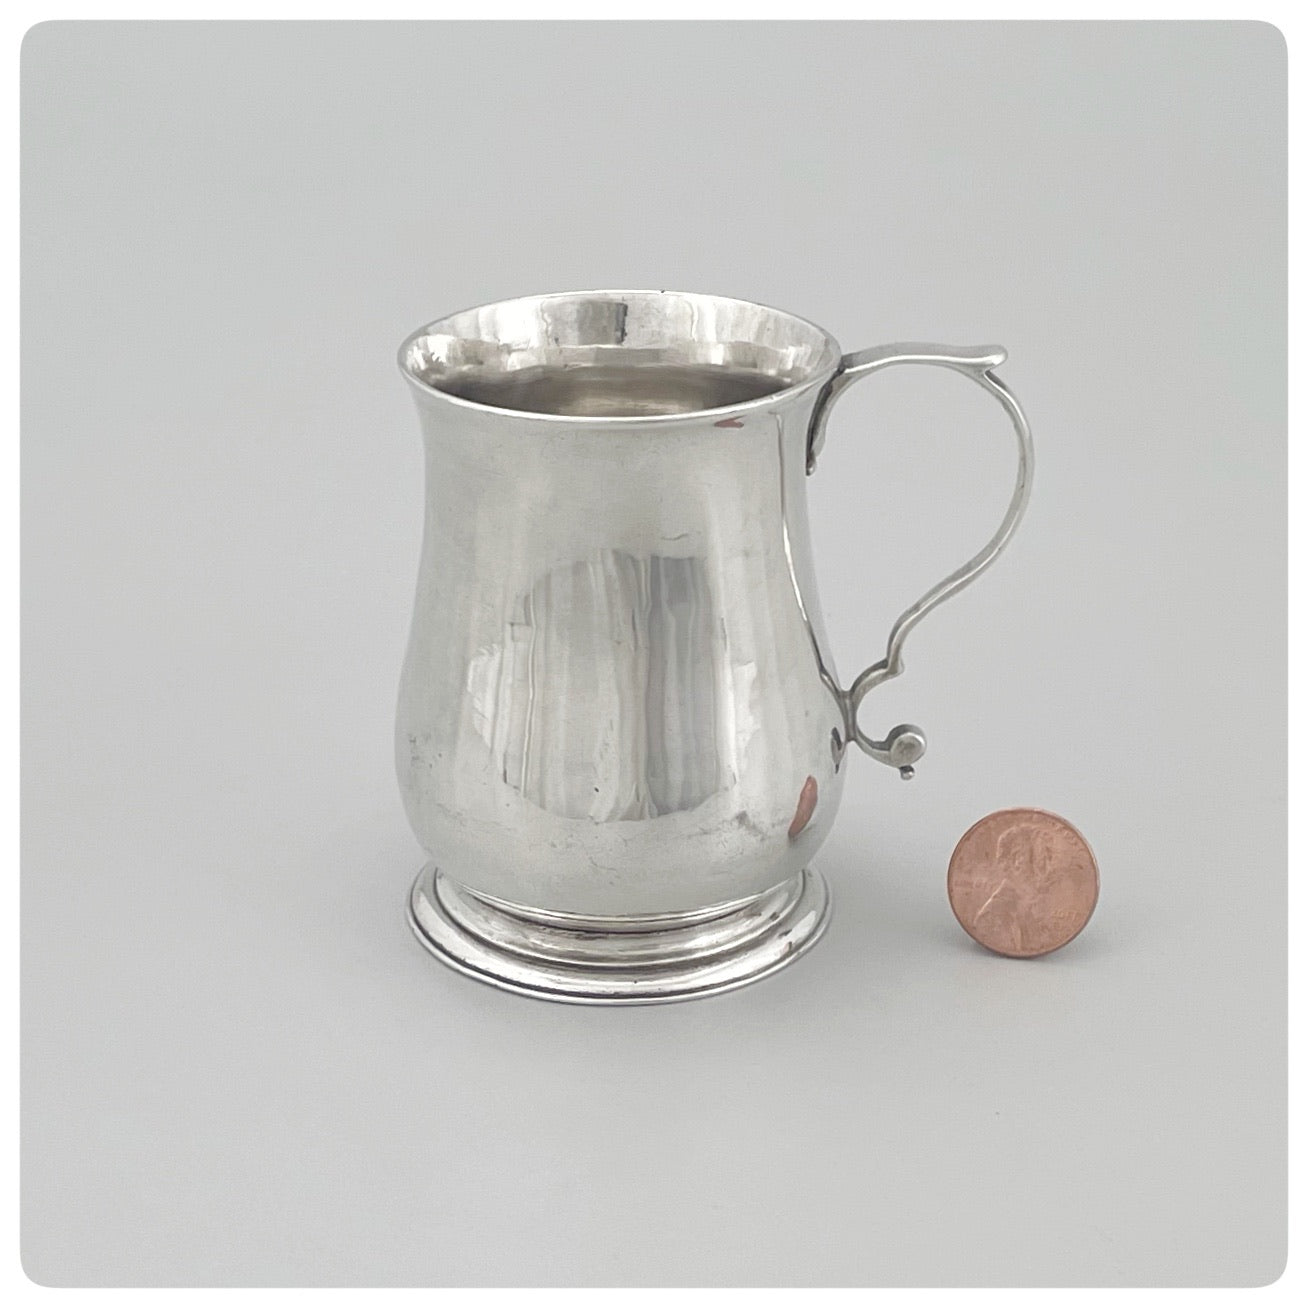 English Sterling Silver Diminutive Cann, London, 1761-1762 - The Silver Vault of Charleston